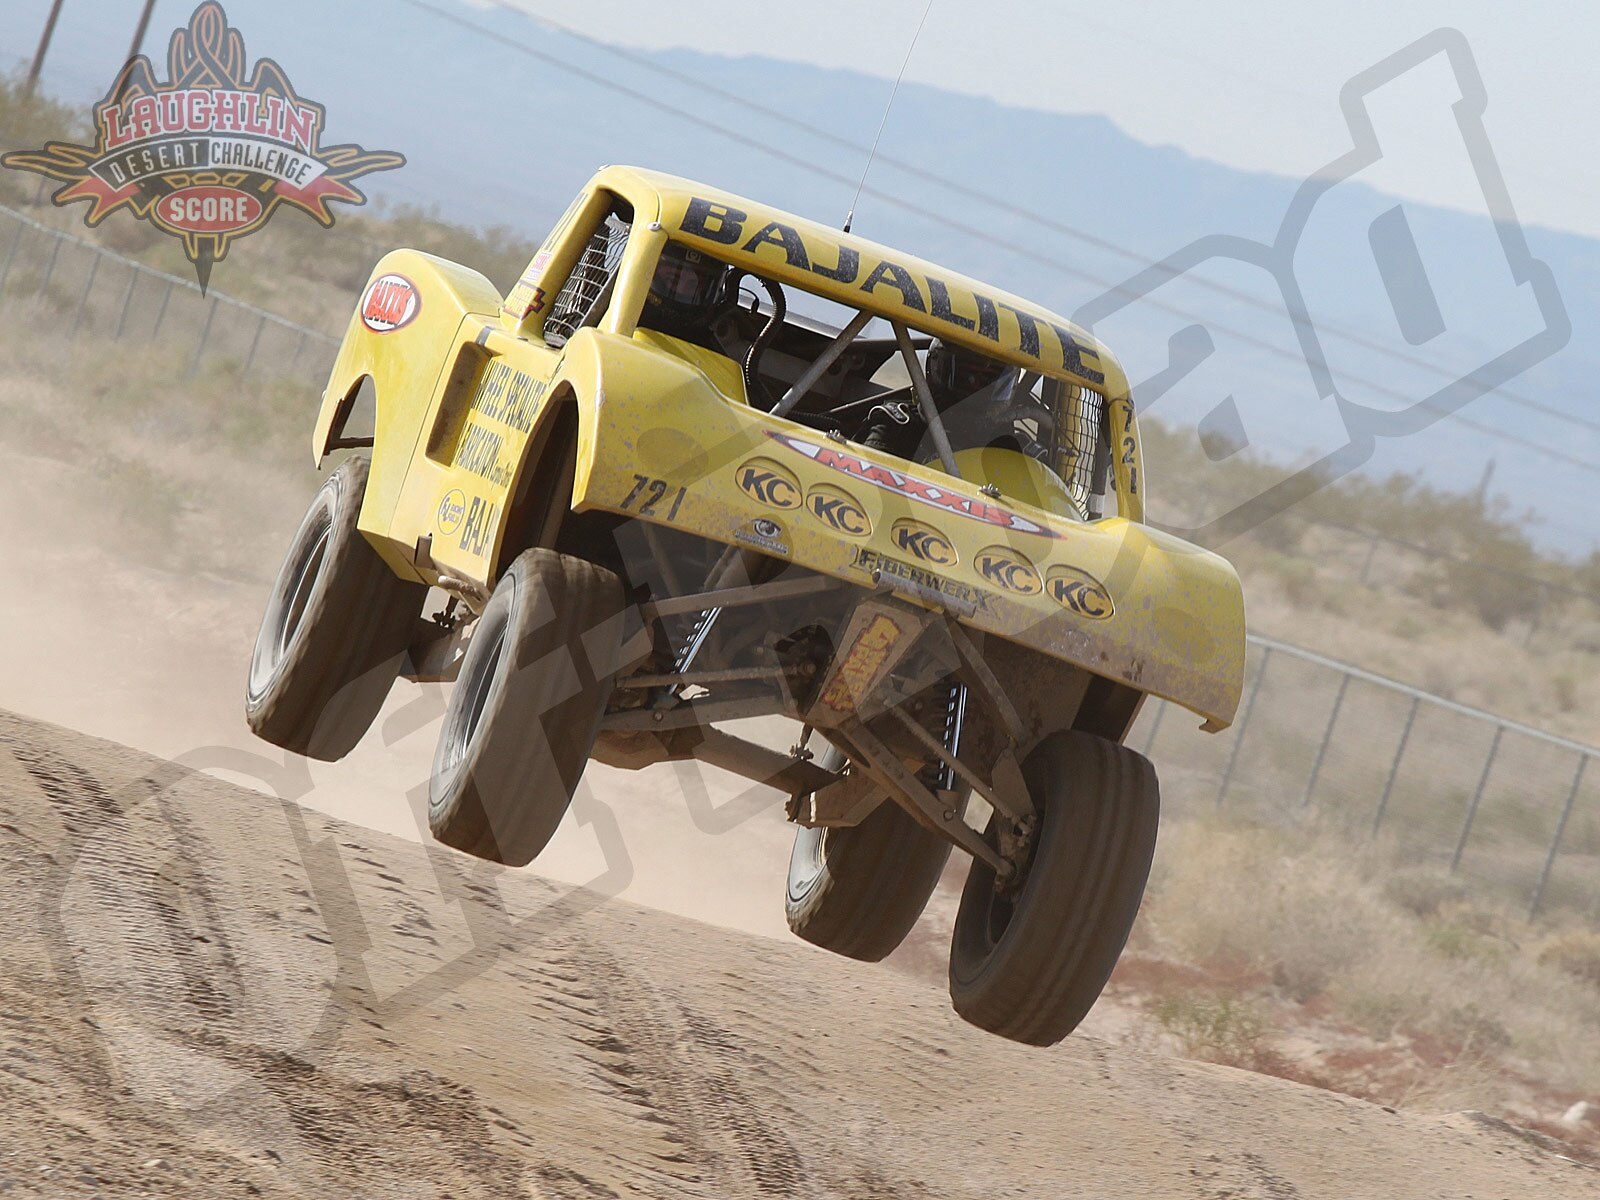 012011or 6613+2011 score laughlin desert challenge+truck classes